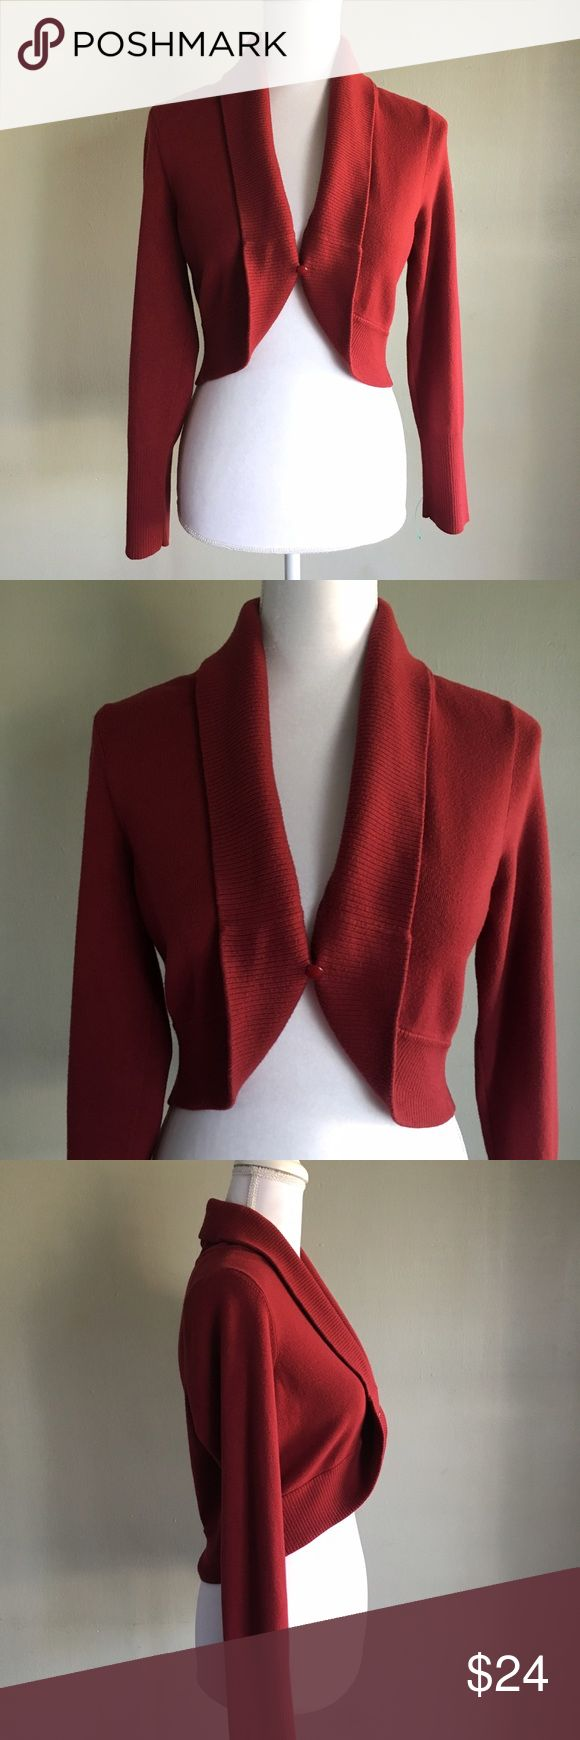 Ann Taylor Red burgundy shrug sweater large Beautiful red burgundy shrug with front button closure from Ann Taylor loft  size large Ann Taylor Sweaters Shrugs & Ponchos